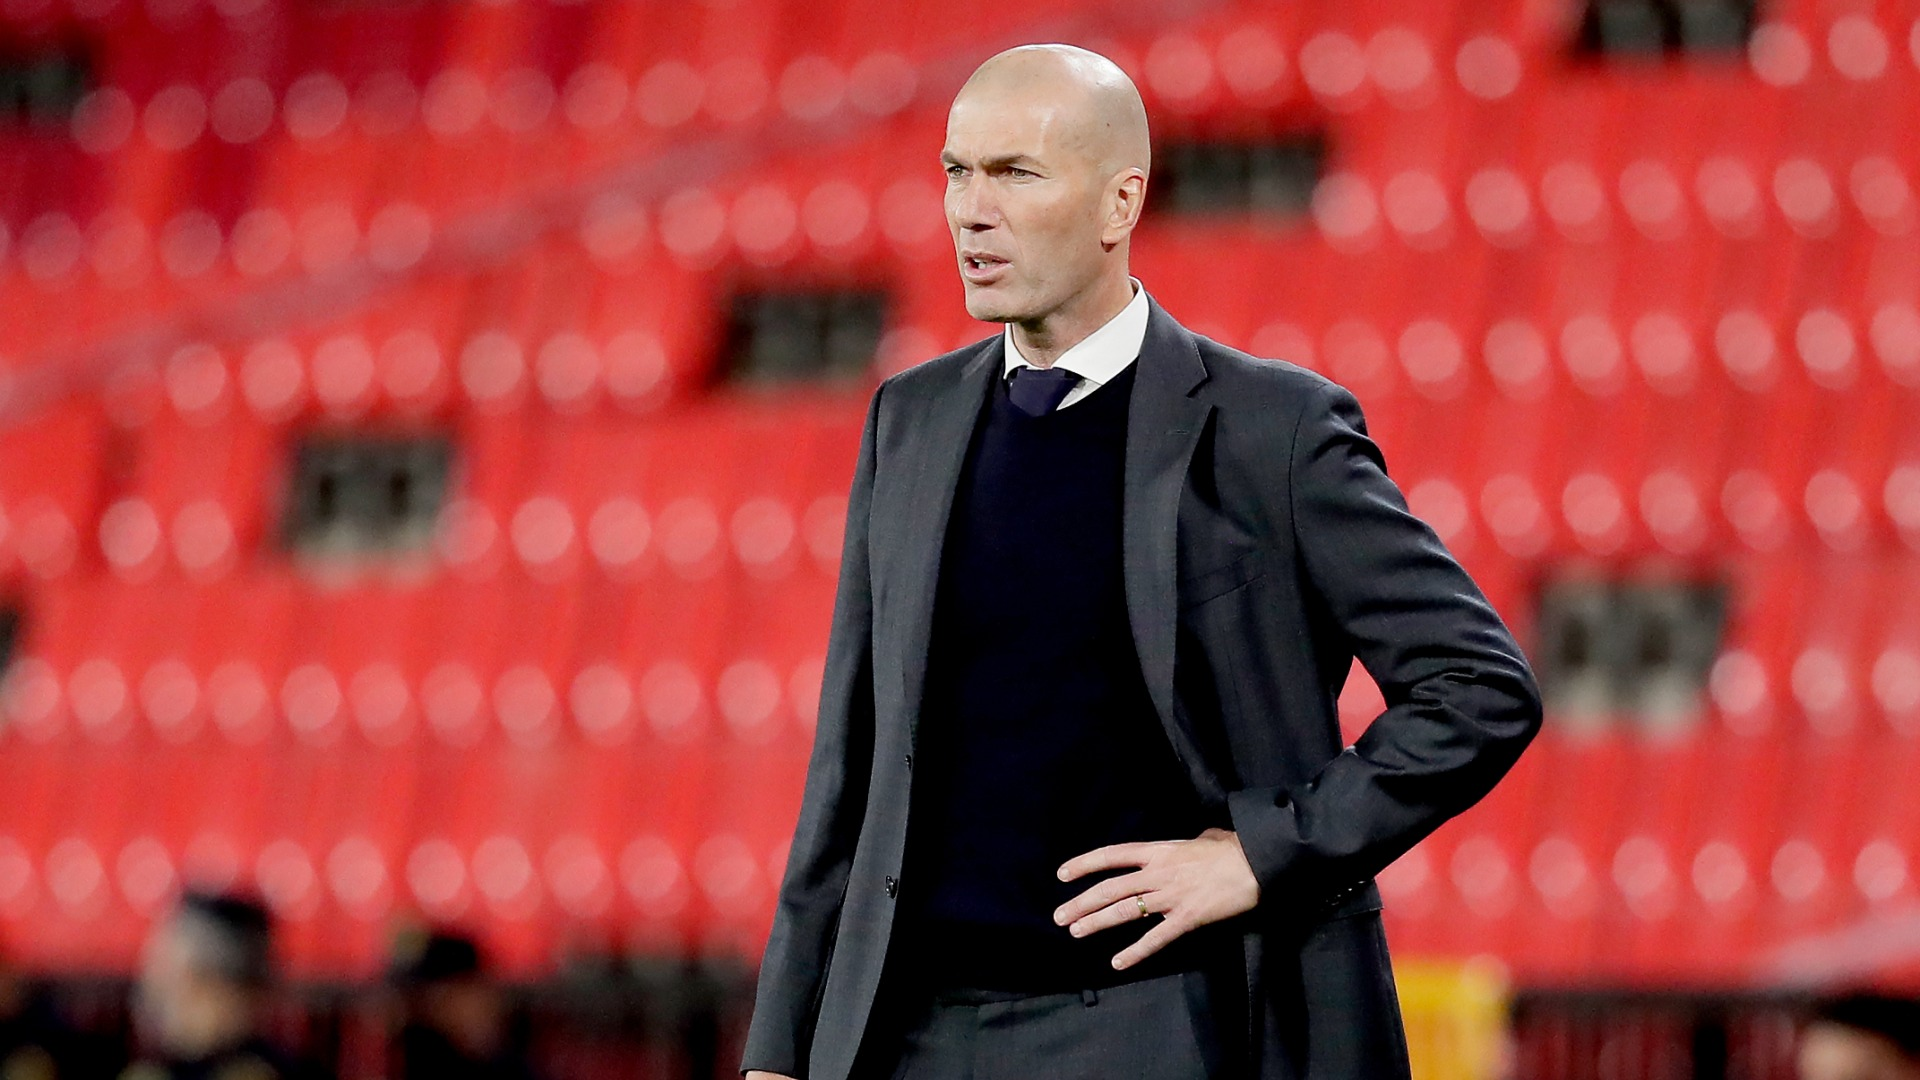 Zidane vows Real Madrid will 'go to the end' in LaLiga title race